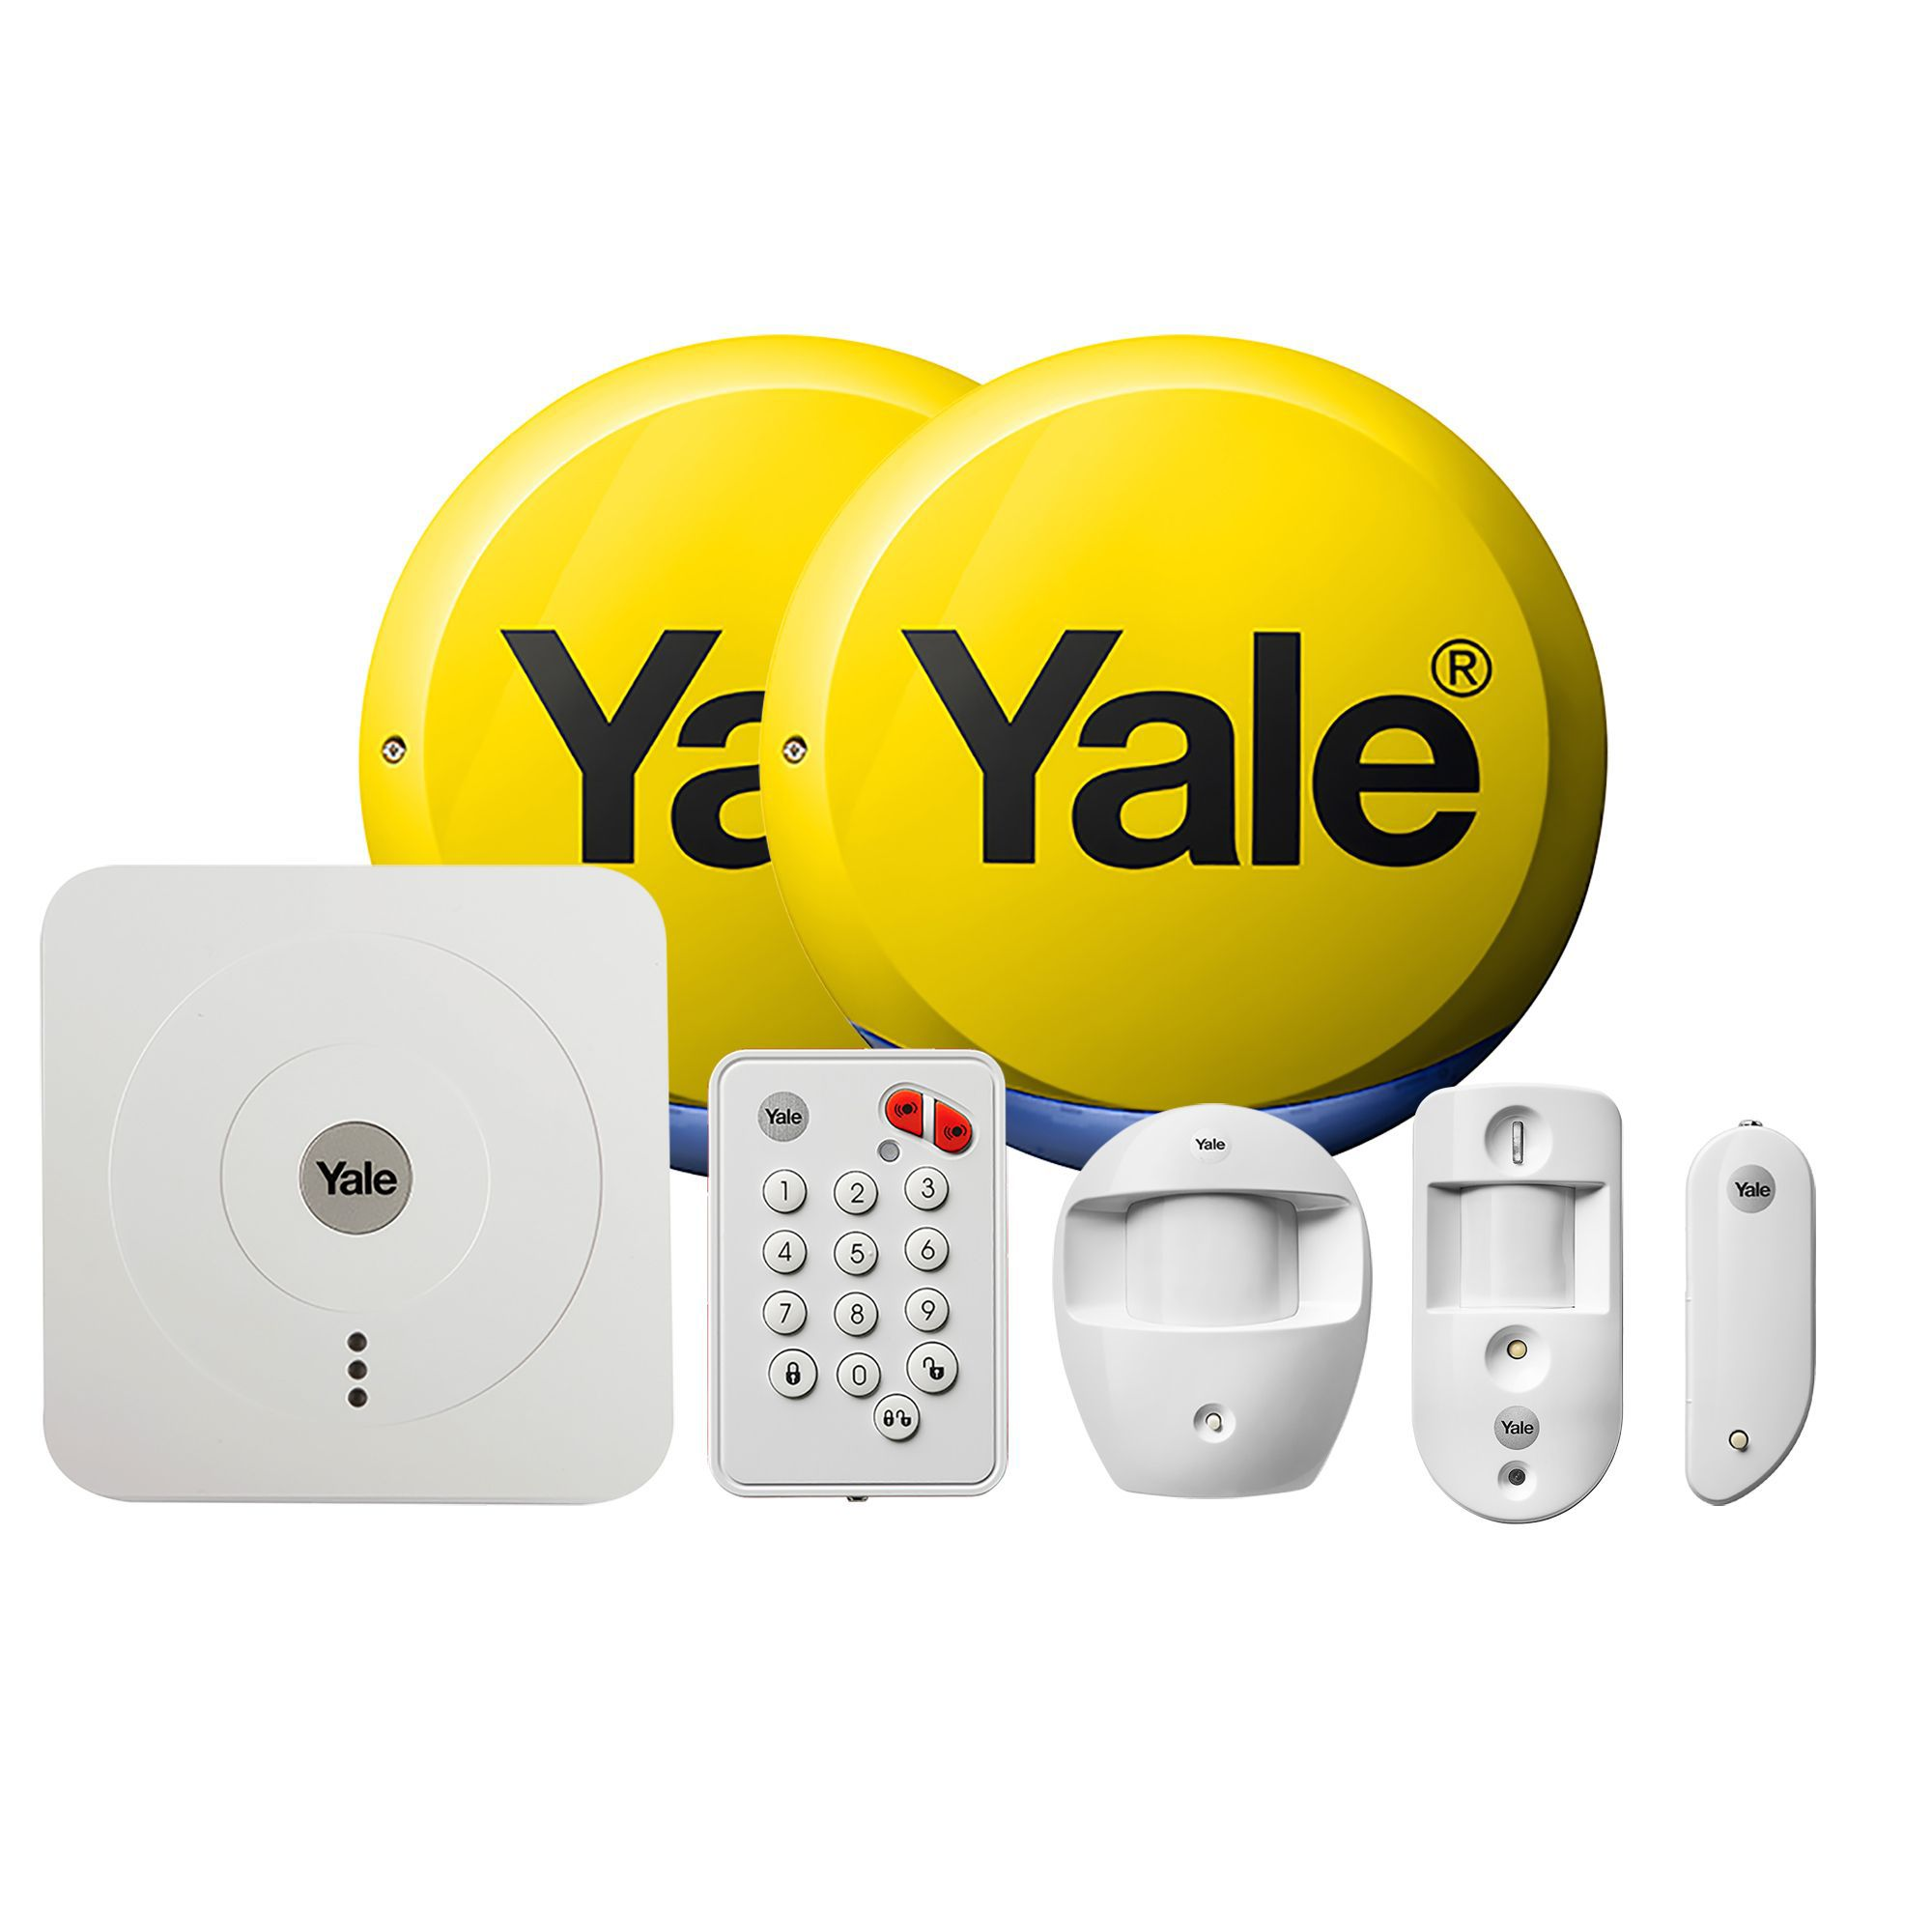 hight resolution of yale wireless smart home view alarm kit